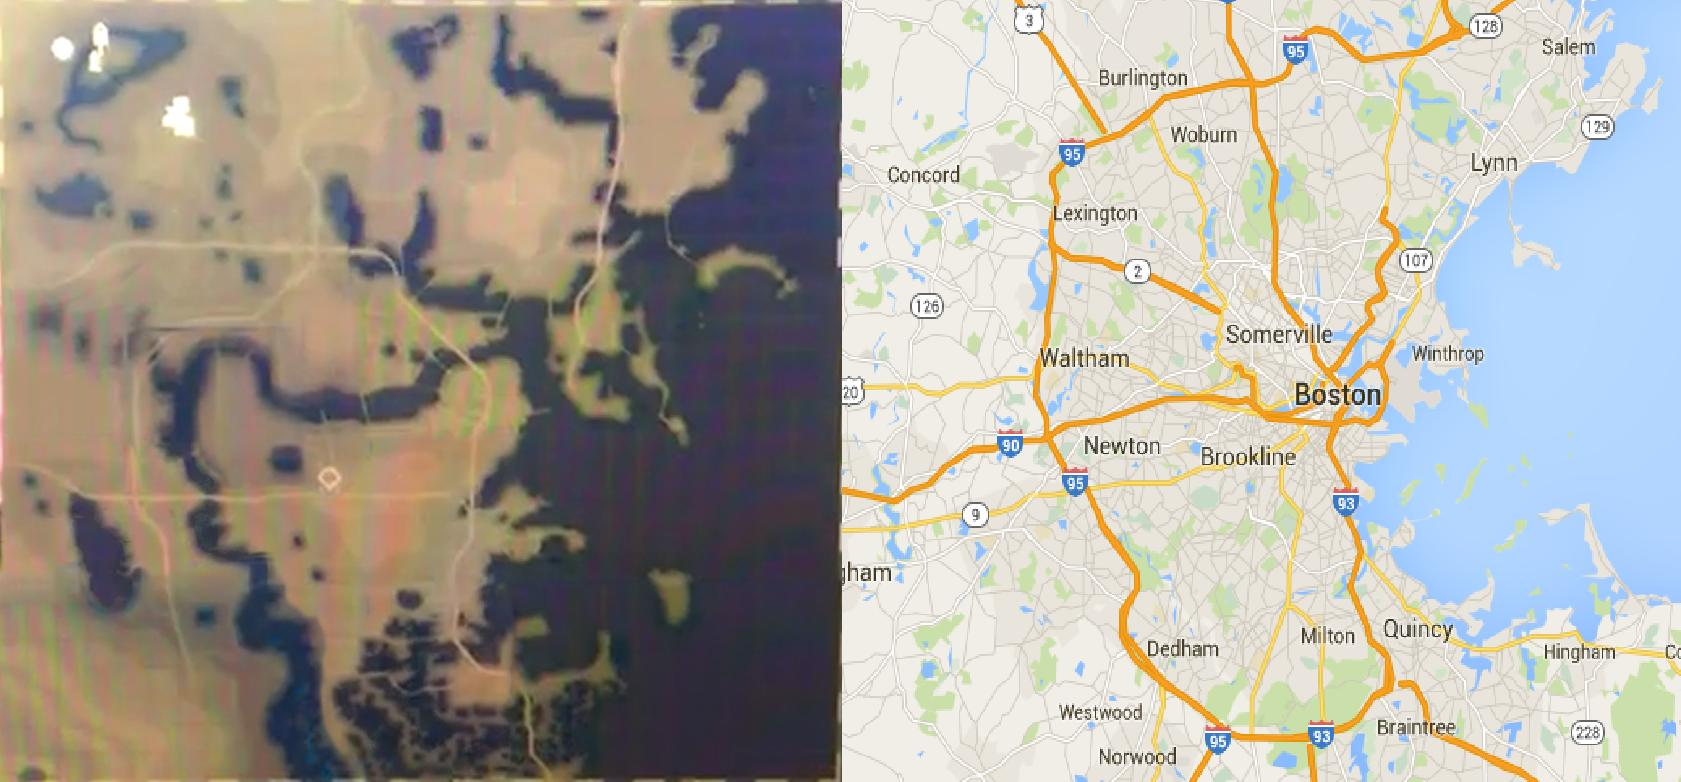 Fallout 4 Map vs Real Life Boston City Map Comparison Shows Scale Approximat